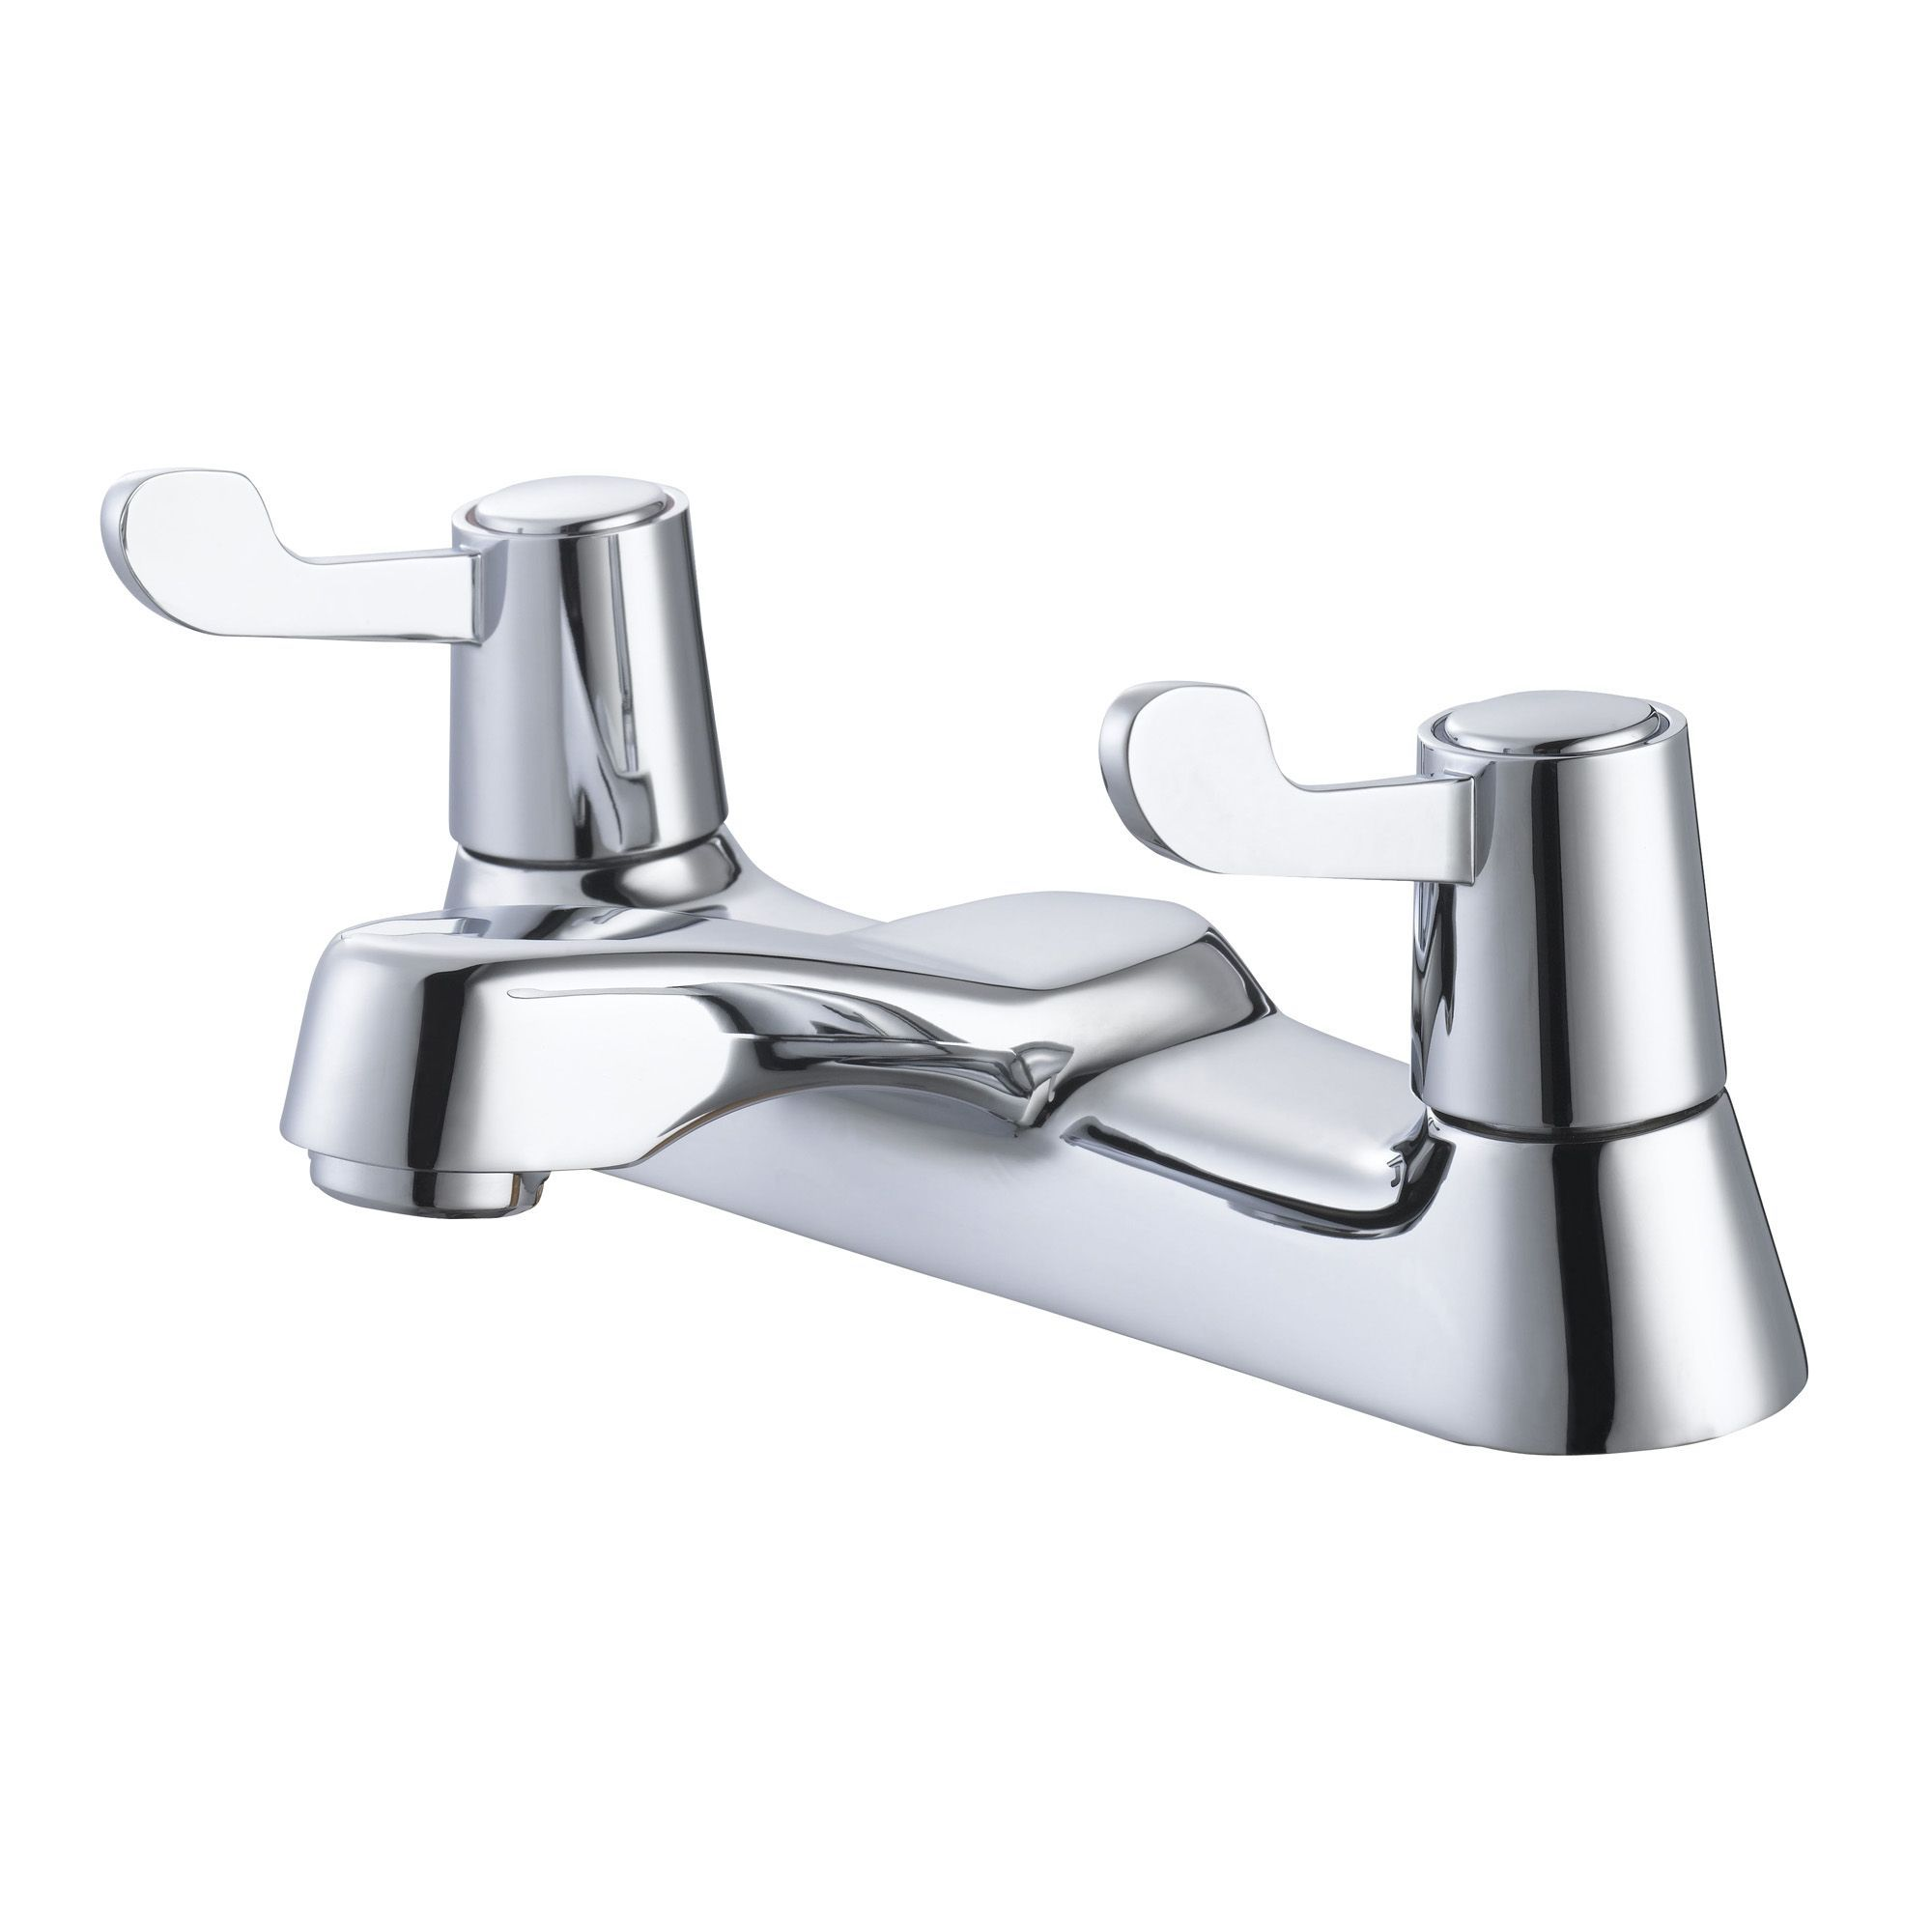 Plumbsure Amber Chrome Bath Mixer Tap | Departments | DIY ...